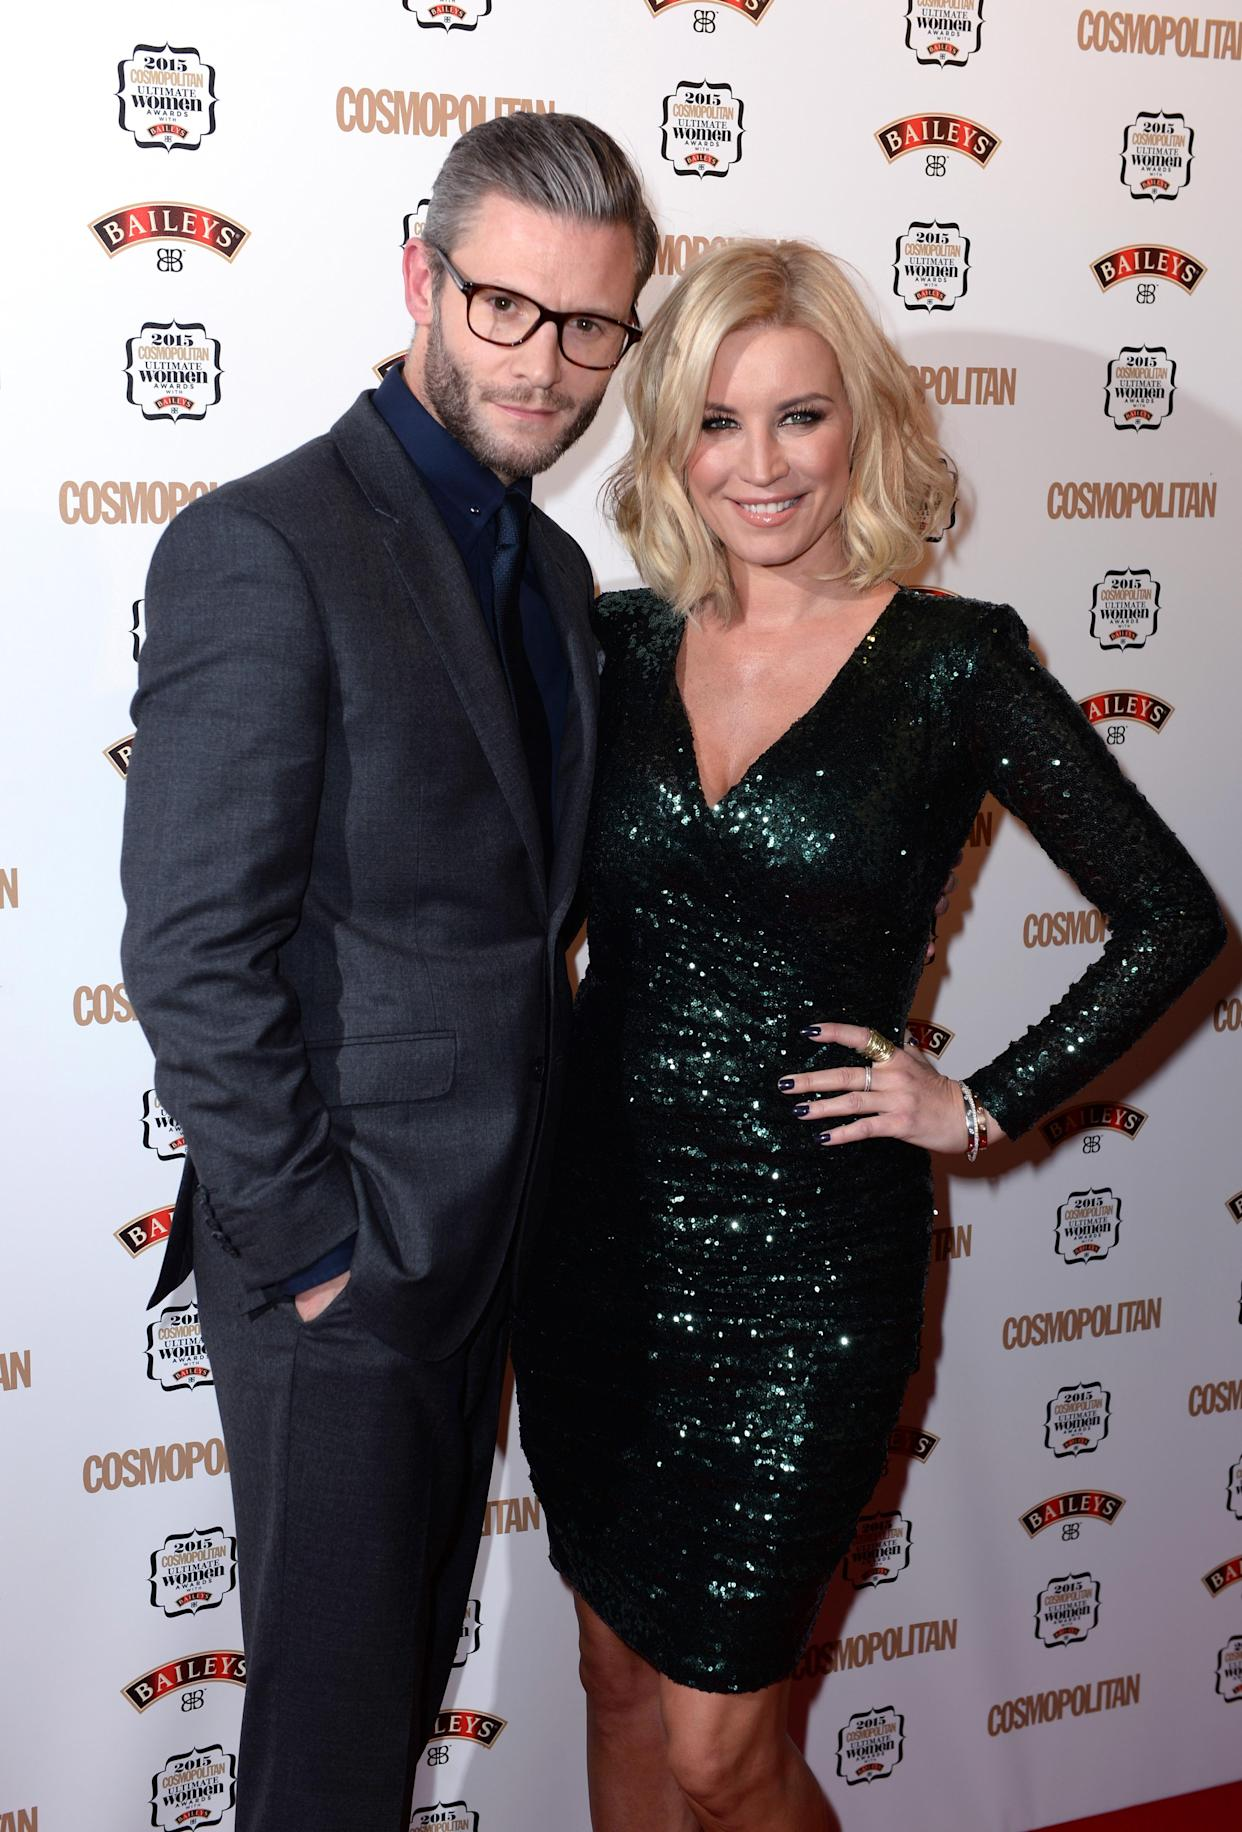 Eddie Boxshall and Denise Van Outen tried cooking therapy to 'spice' up their relationship (Image: Doug Peters EMPICS Entertainment)